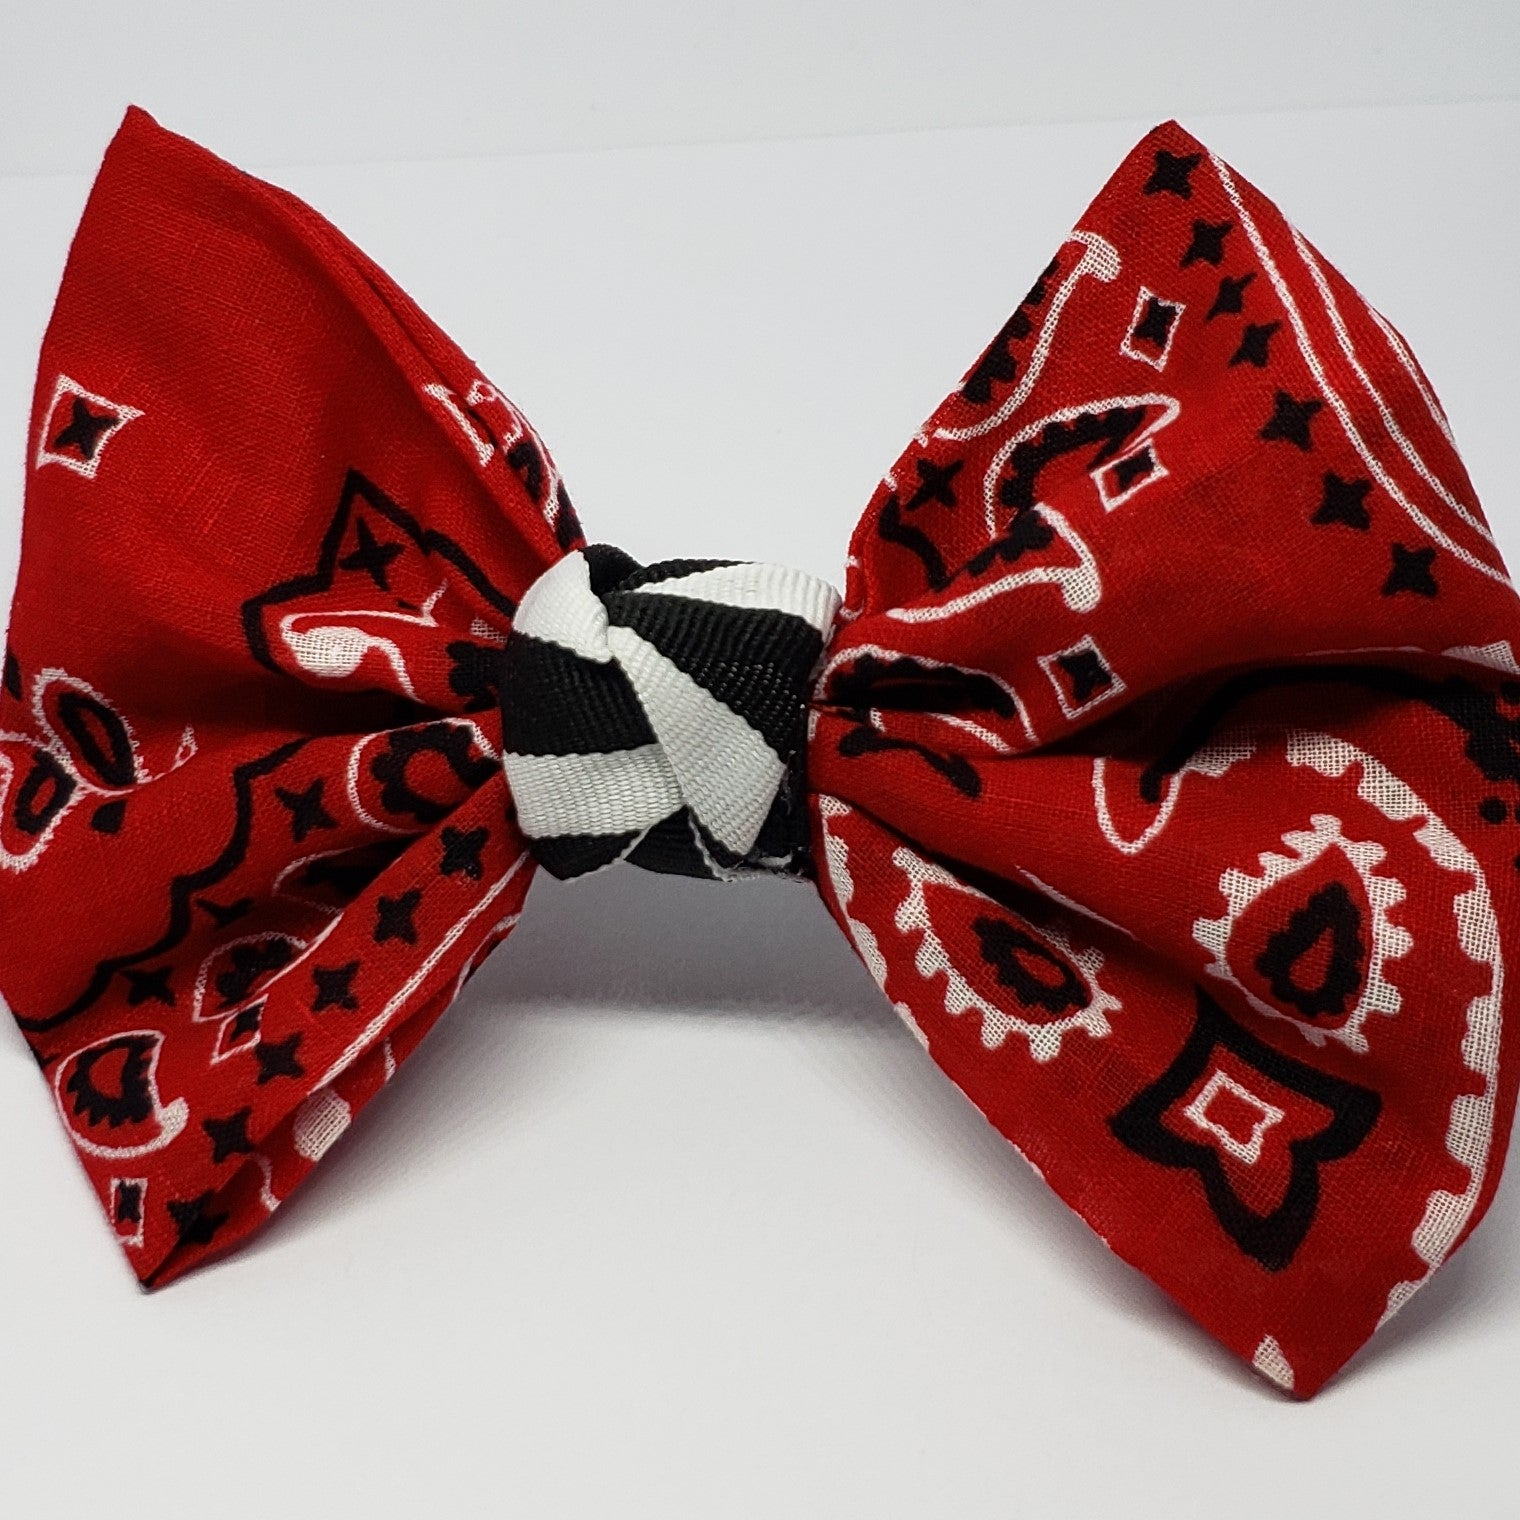 Victoriah Bandana Krazi Bow in Red, Black & White - Houzz of DVA Boutique